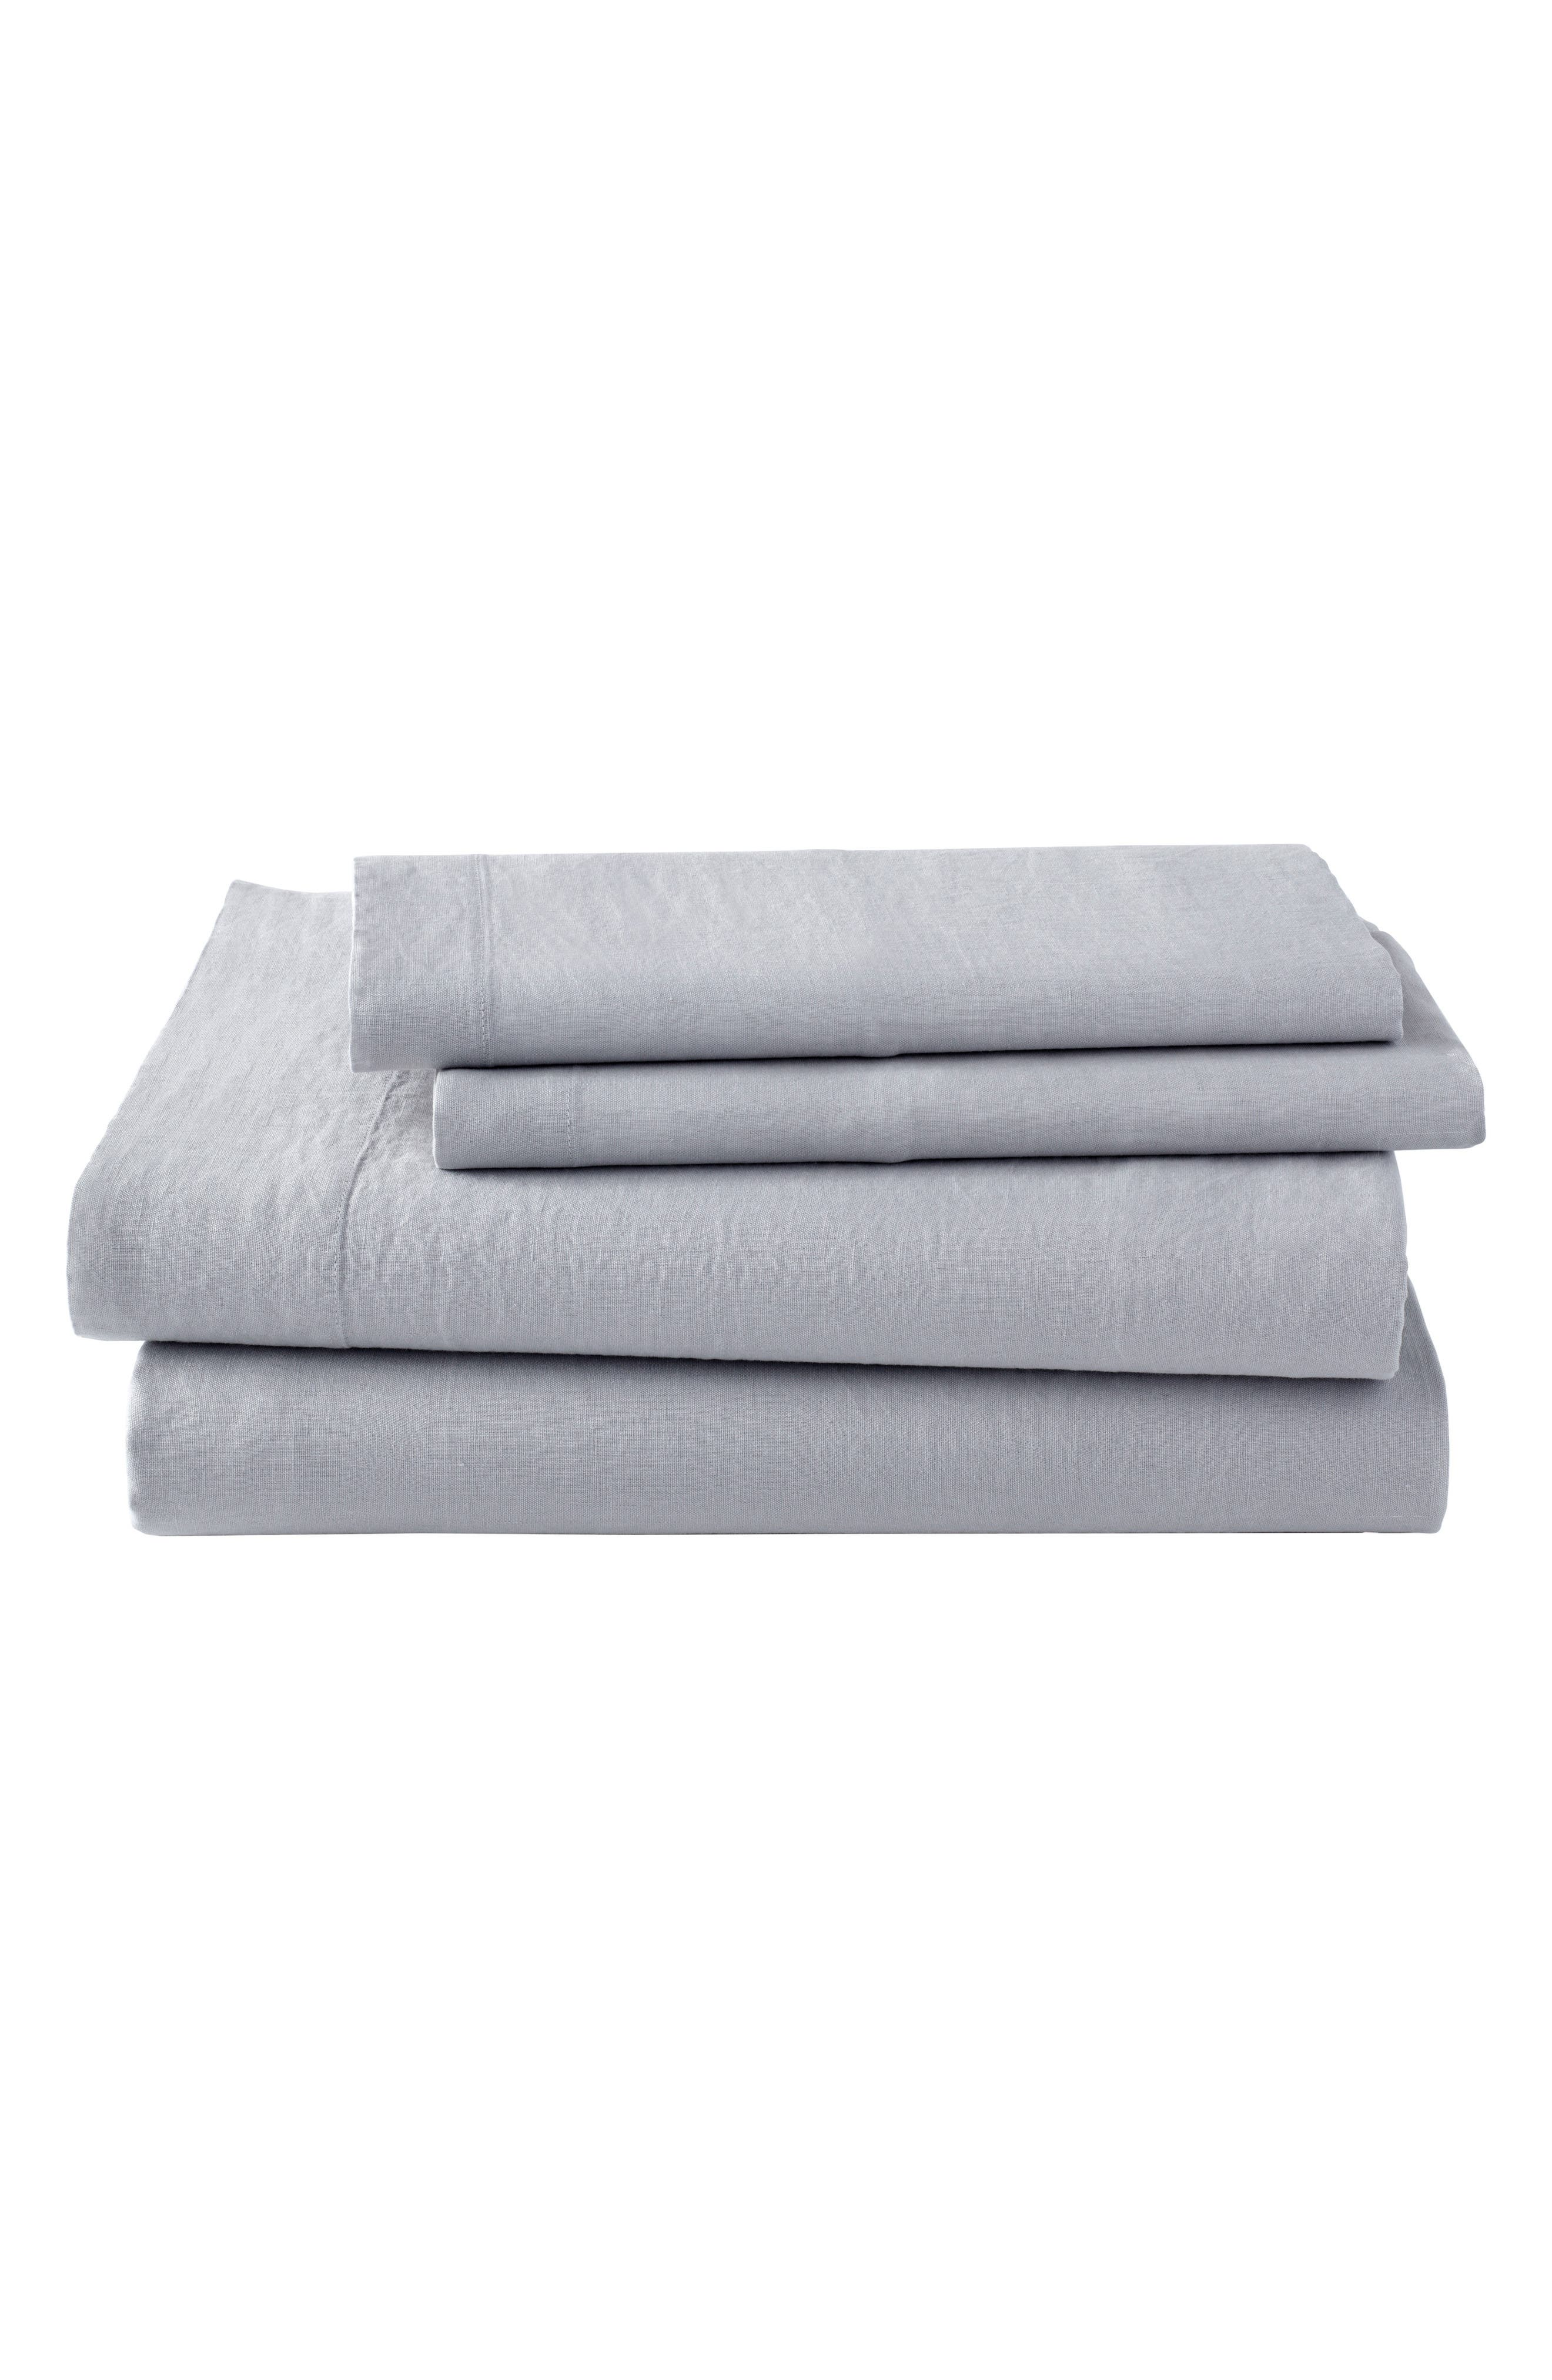 Main Image - KASSATEX Lino Linen 300 Thread Count Fitted Sheet